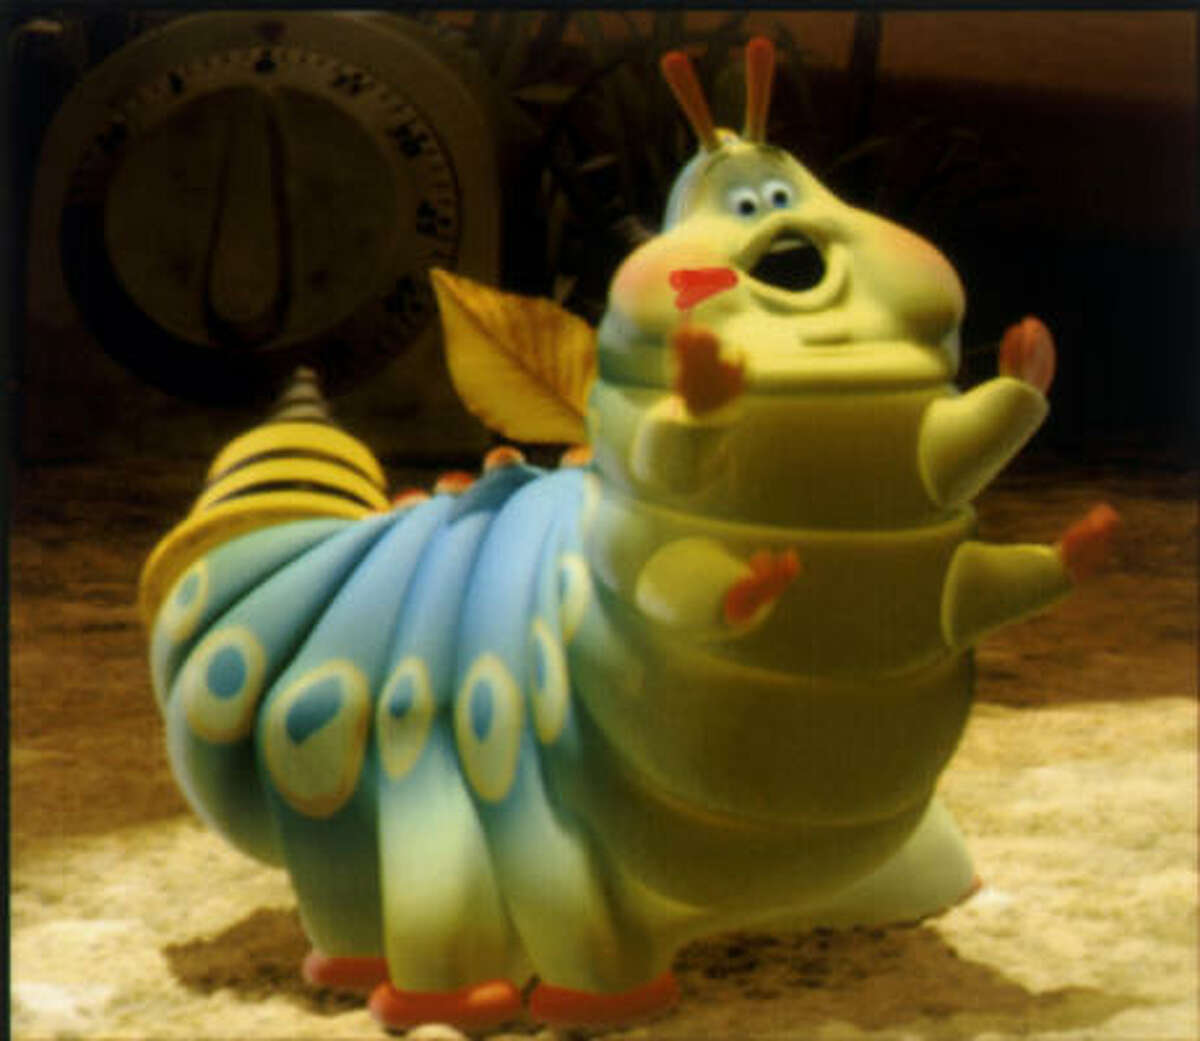 3. What did this character from A Bug's Life hope to one day become?